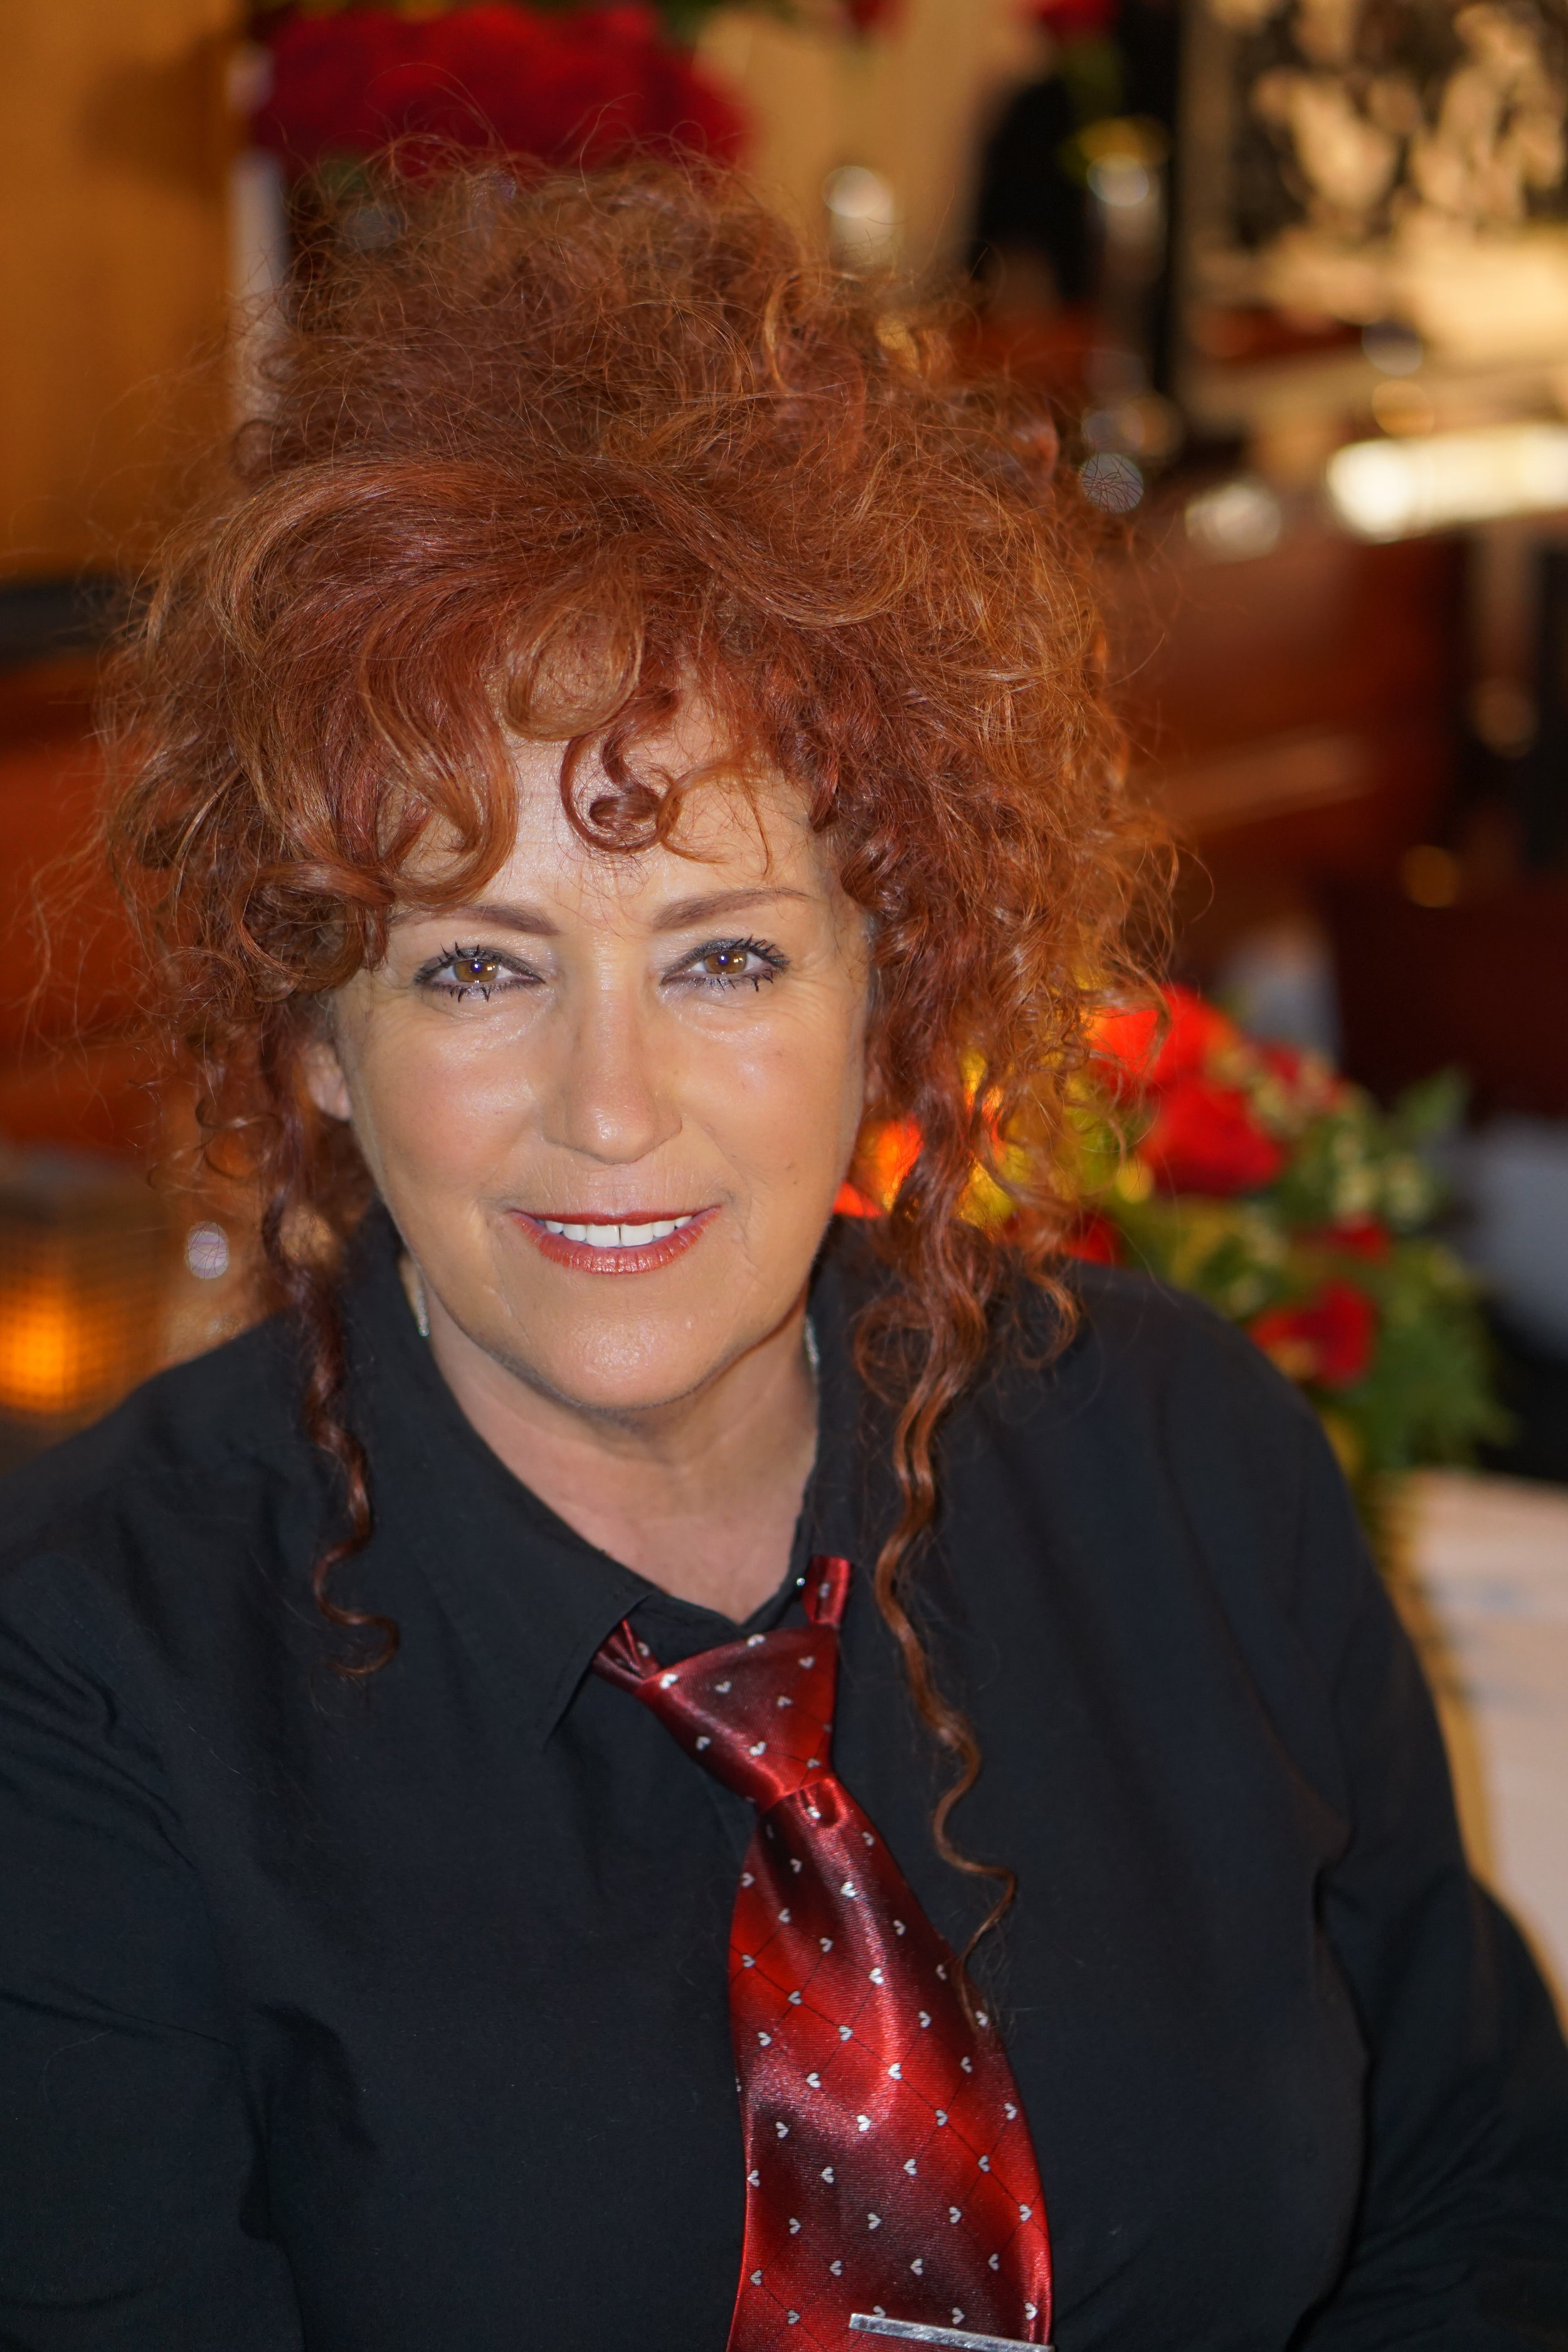 Deannes personality - is just as fiery as her red hair! In a good way her energy brings a zest of life to explain our menu to customers or exploring who they are so that they many enjoy themselves to their best capabilities made possible by the Vienna team!